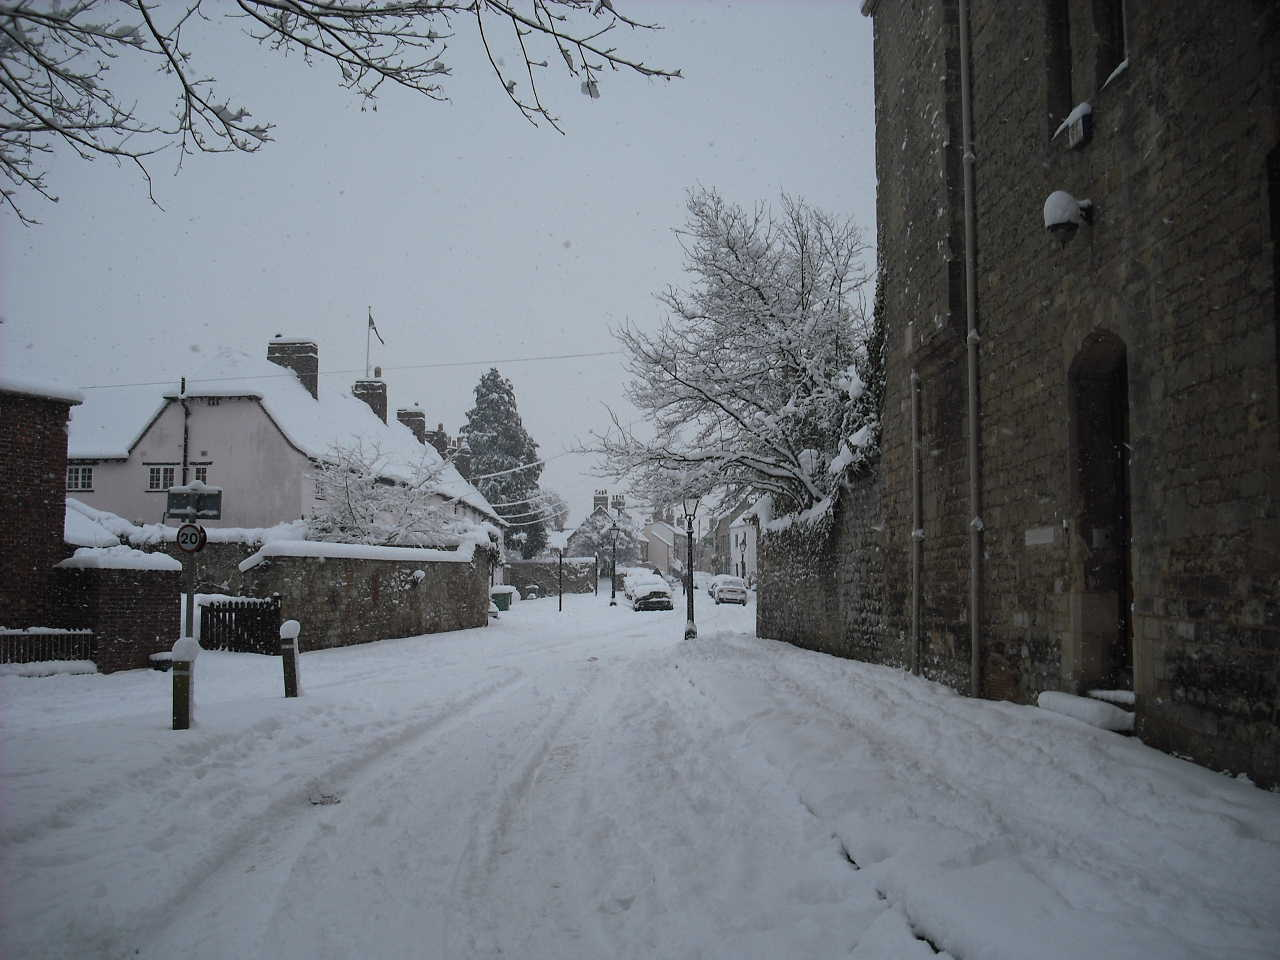 View towards church in snow 2010